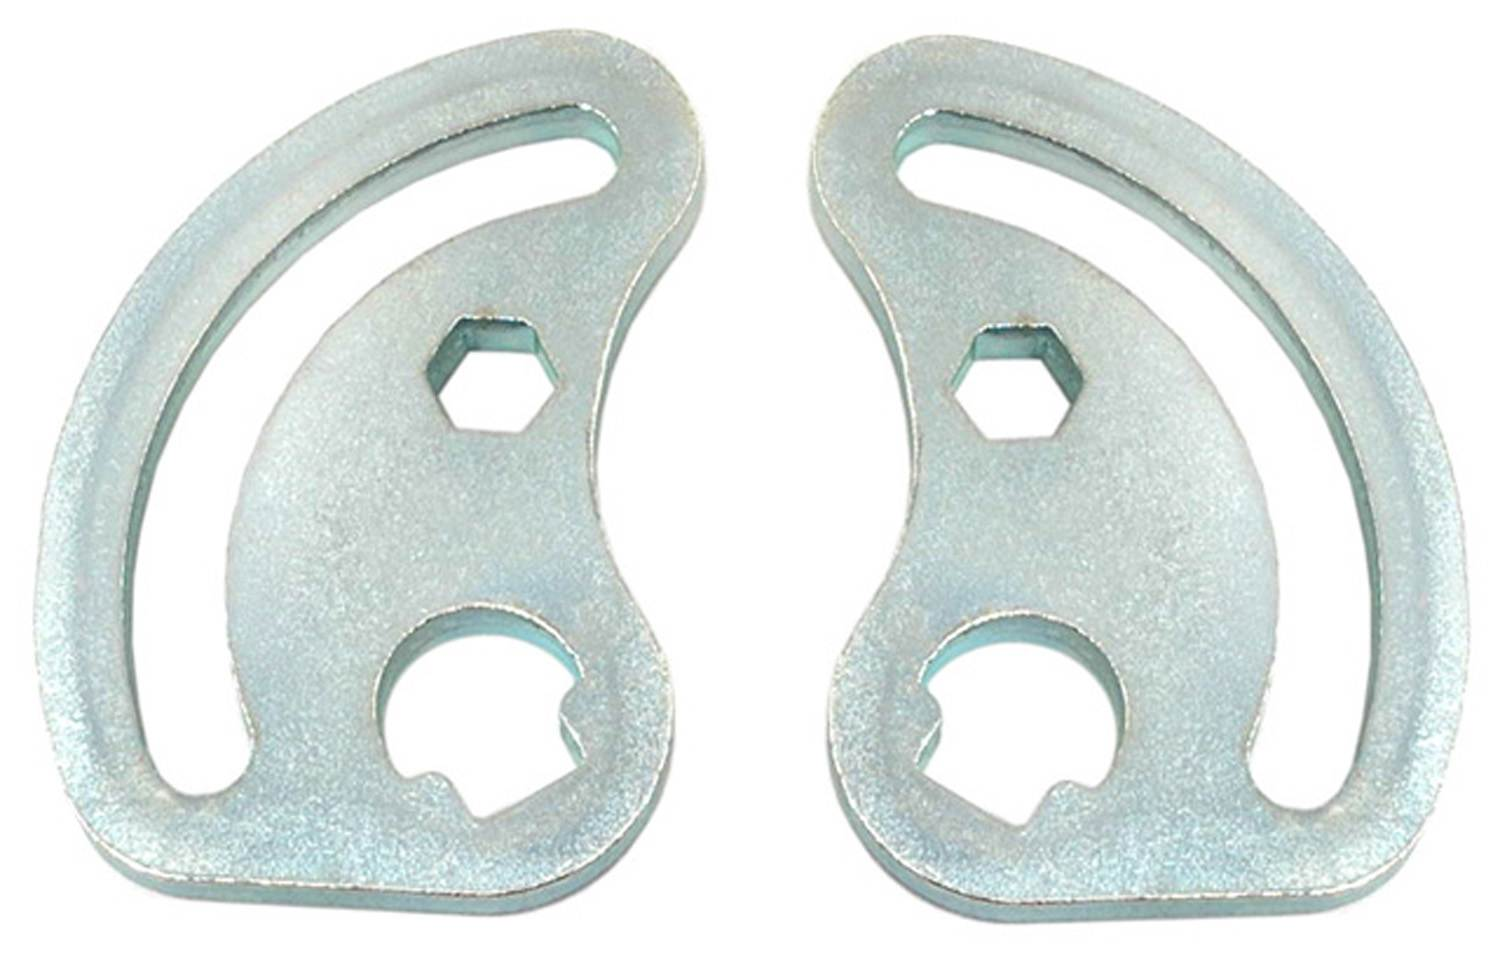 ACDELCO PROFESSIONAL - Alignment Caster/Camber Kit - DCC 45K0190